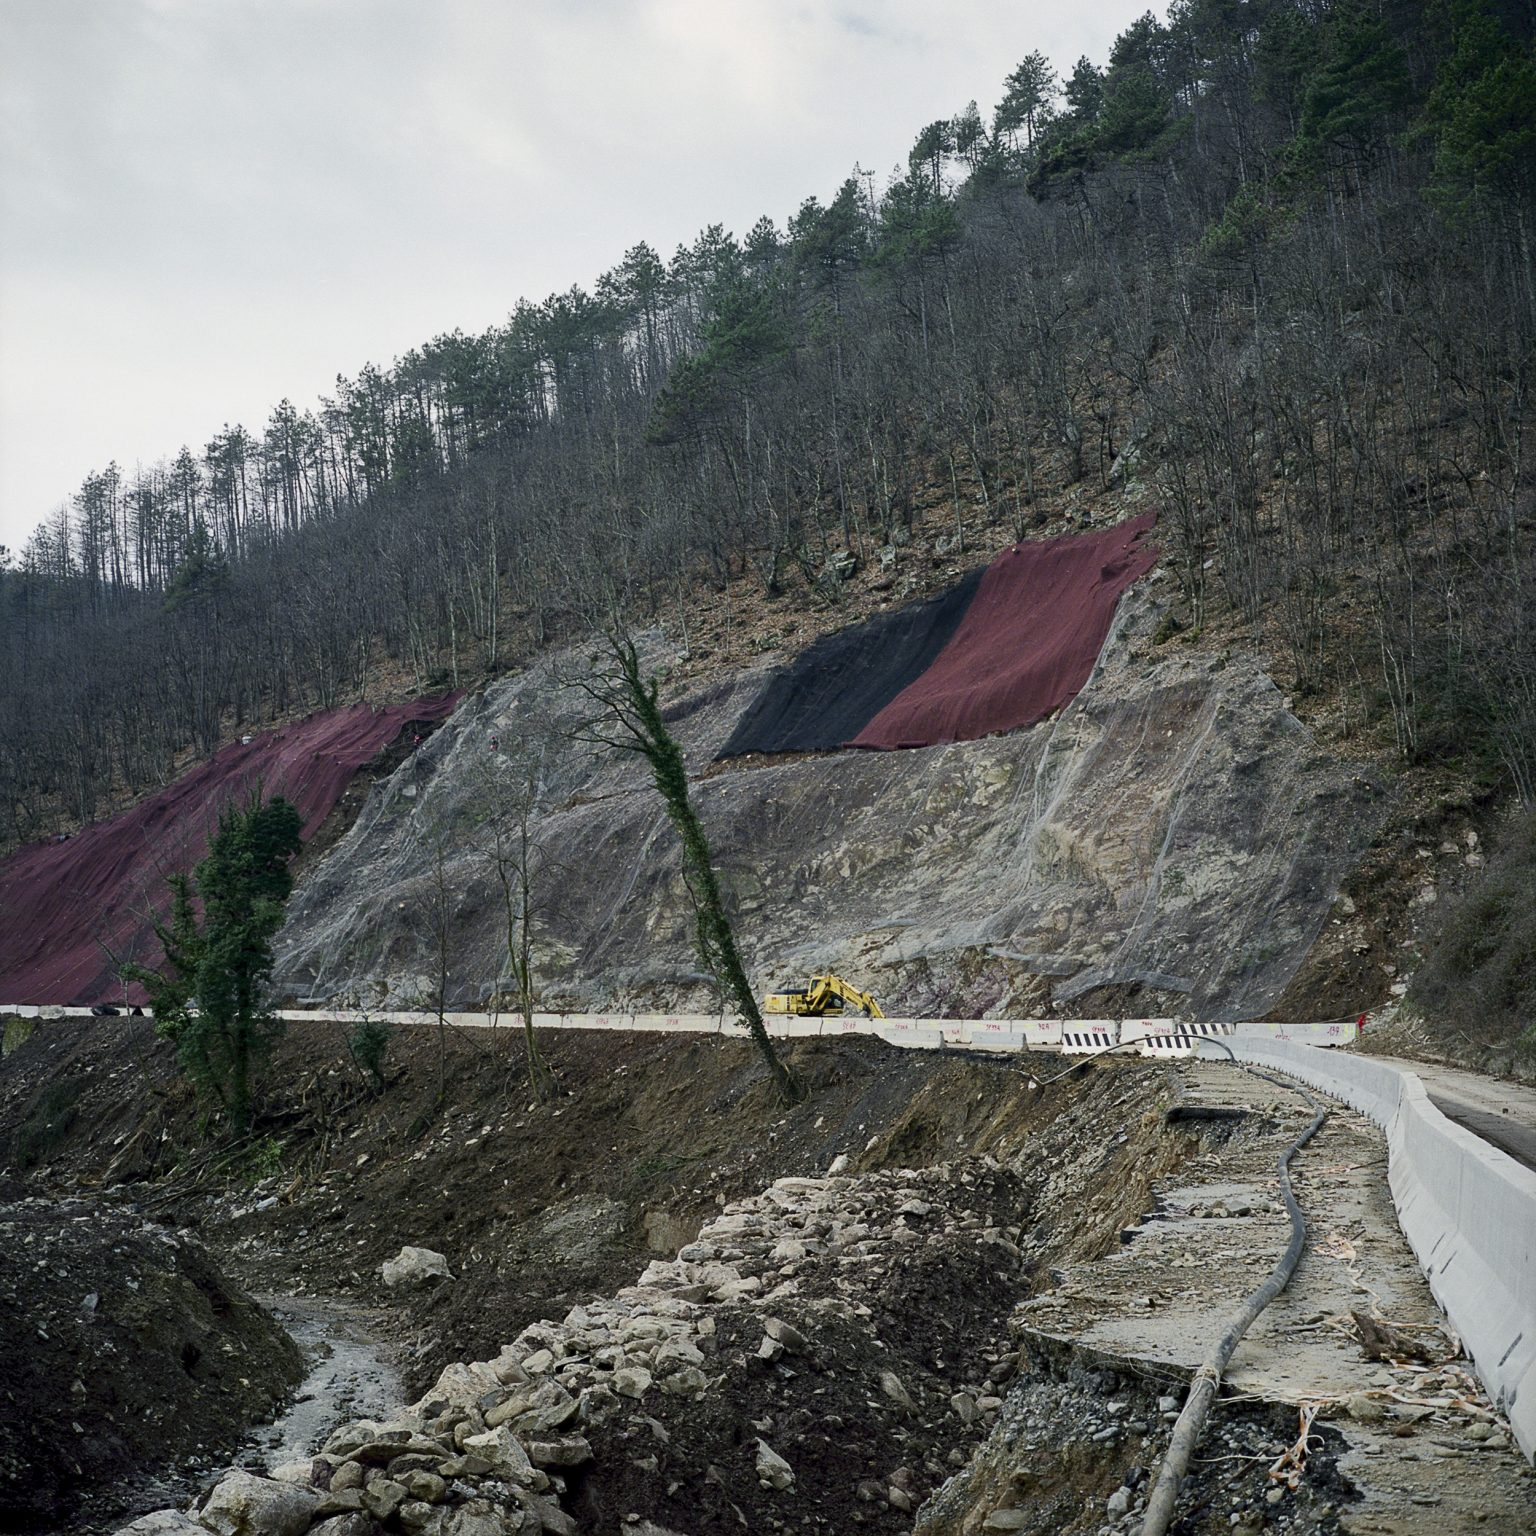 On the road from Pignone towards the sea coast, January 2012. The side of a hill is being covered due to the danger of landslides.